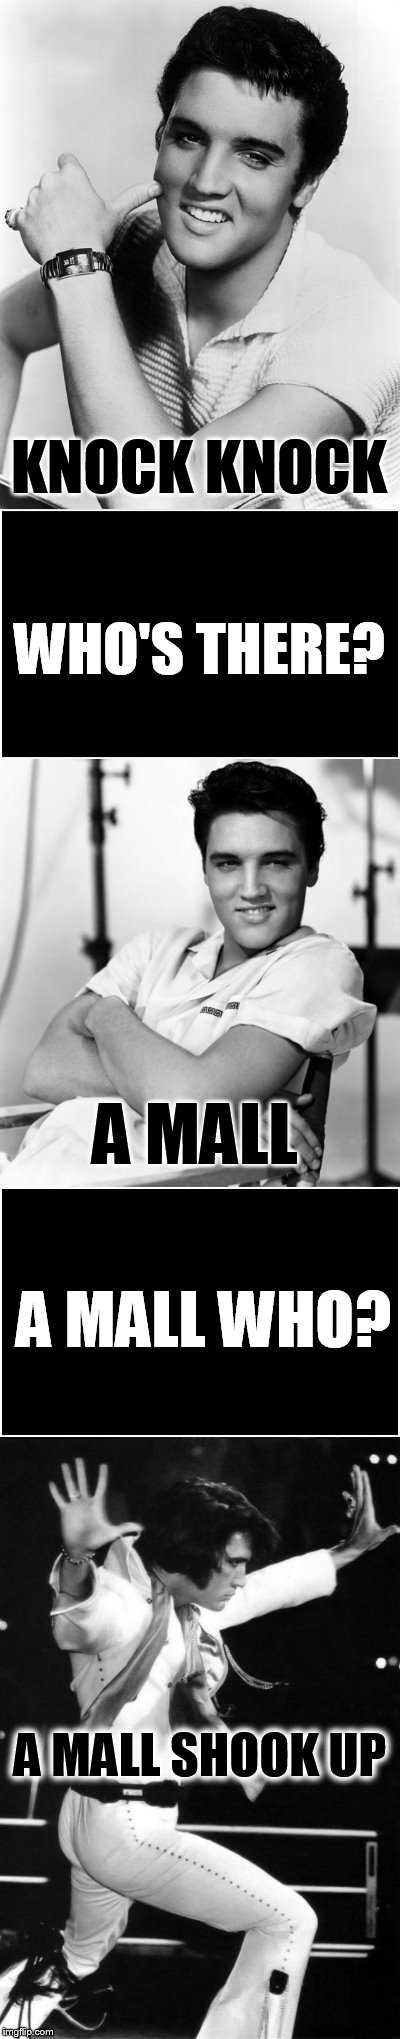 Cheesy Elvis Knock Knock Jokes | KNOCK KNOCK WHO'S THERE? A MALL A MALL SHOOK UP A MALL WHO? | image tagged in memes,elvis,elvis presley,all shook up,knock knock,jokes | made w/ Imgflip meme maker